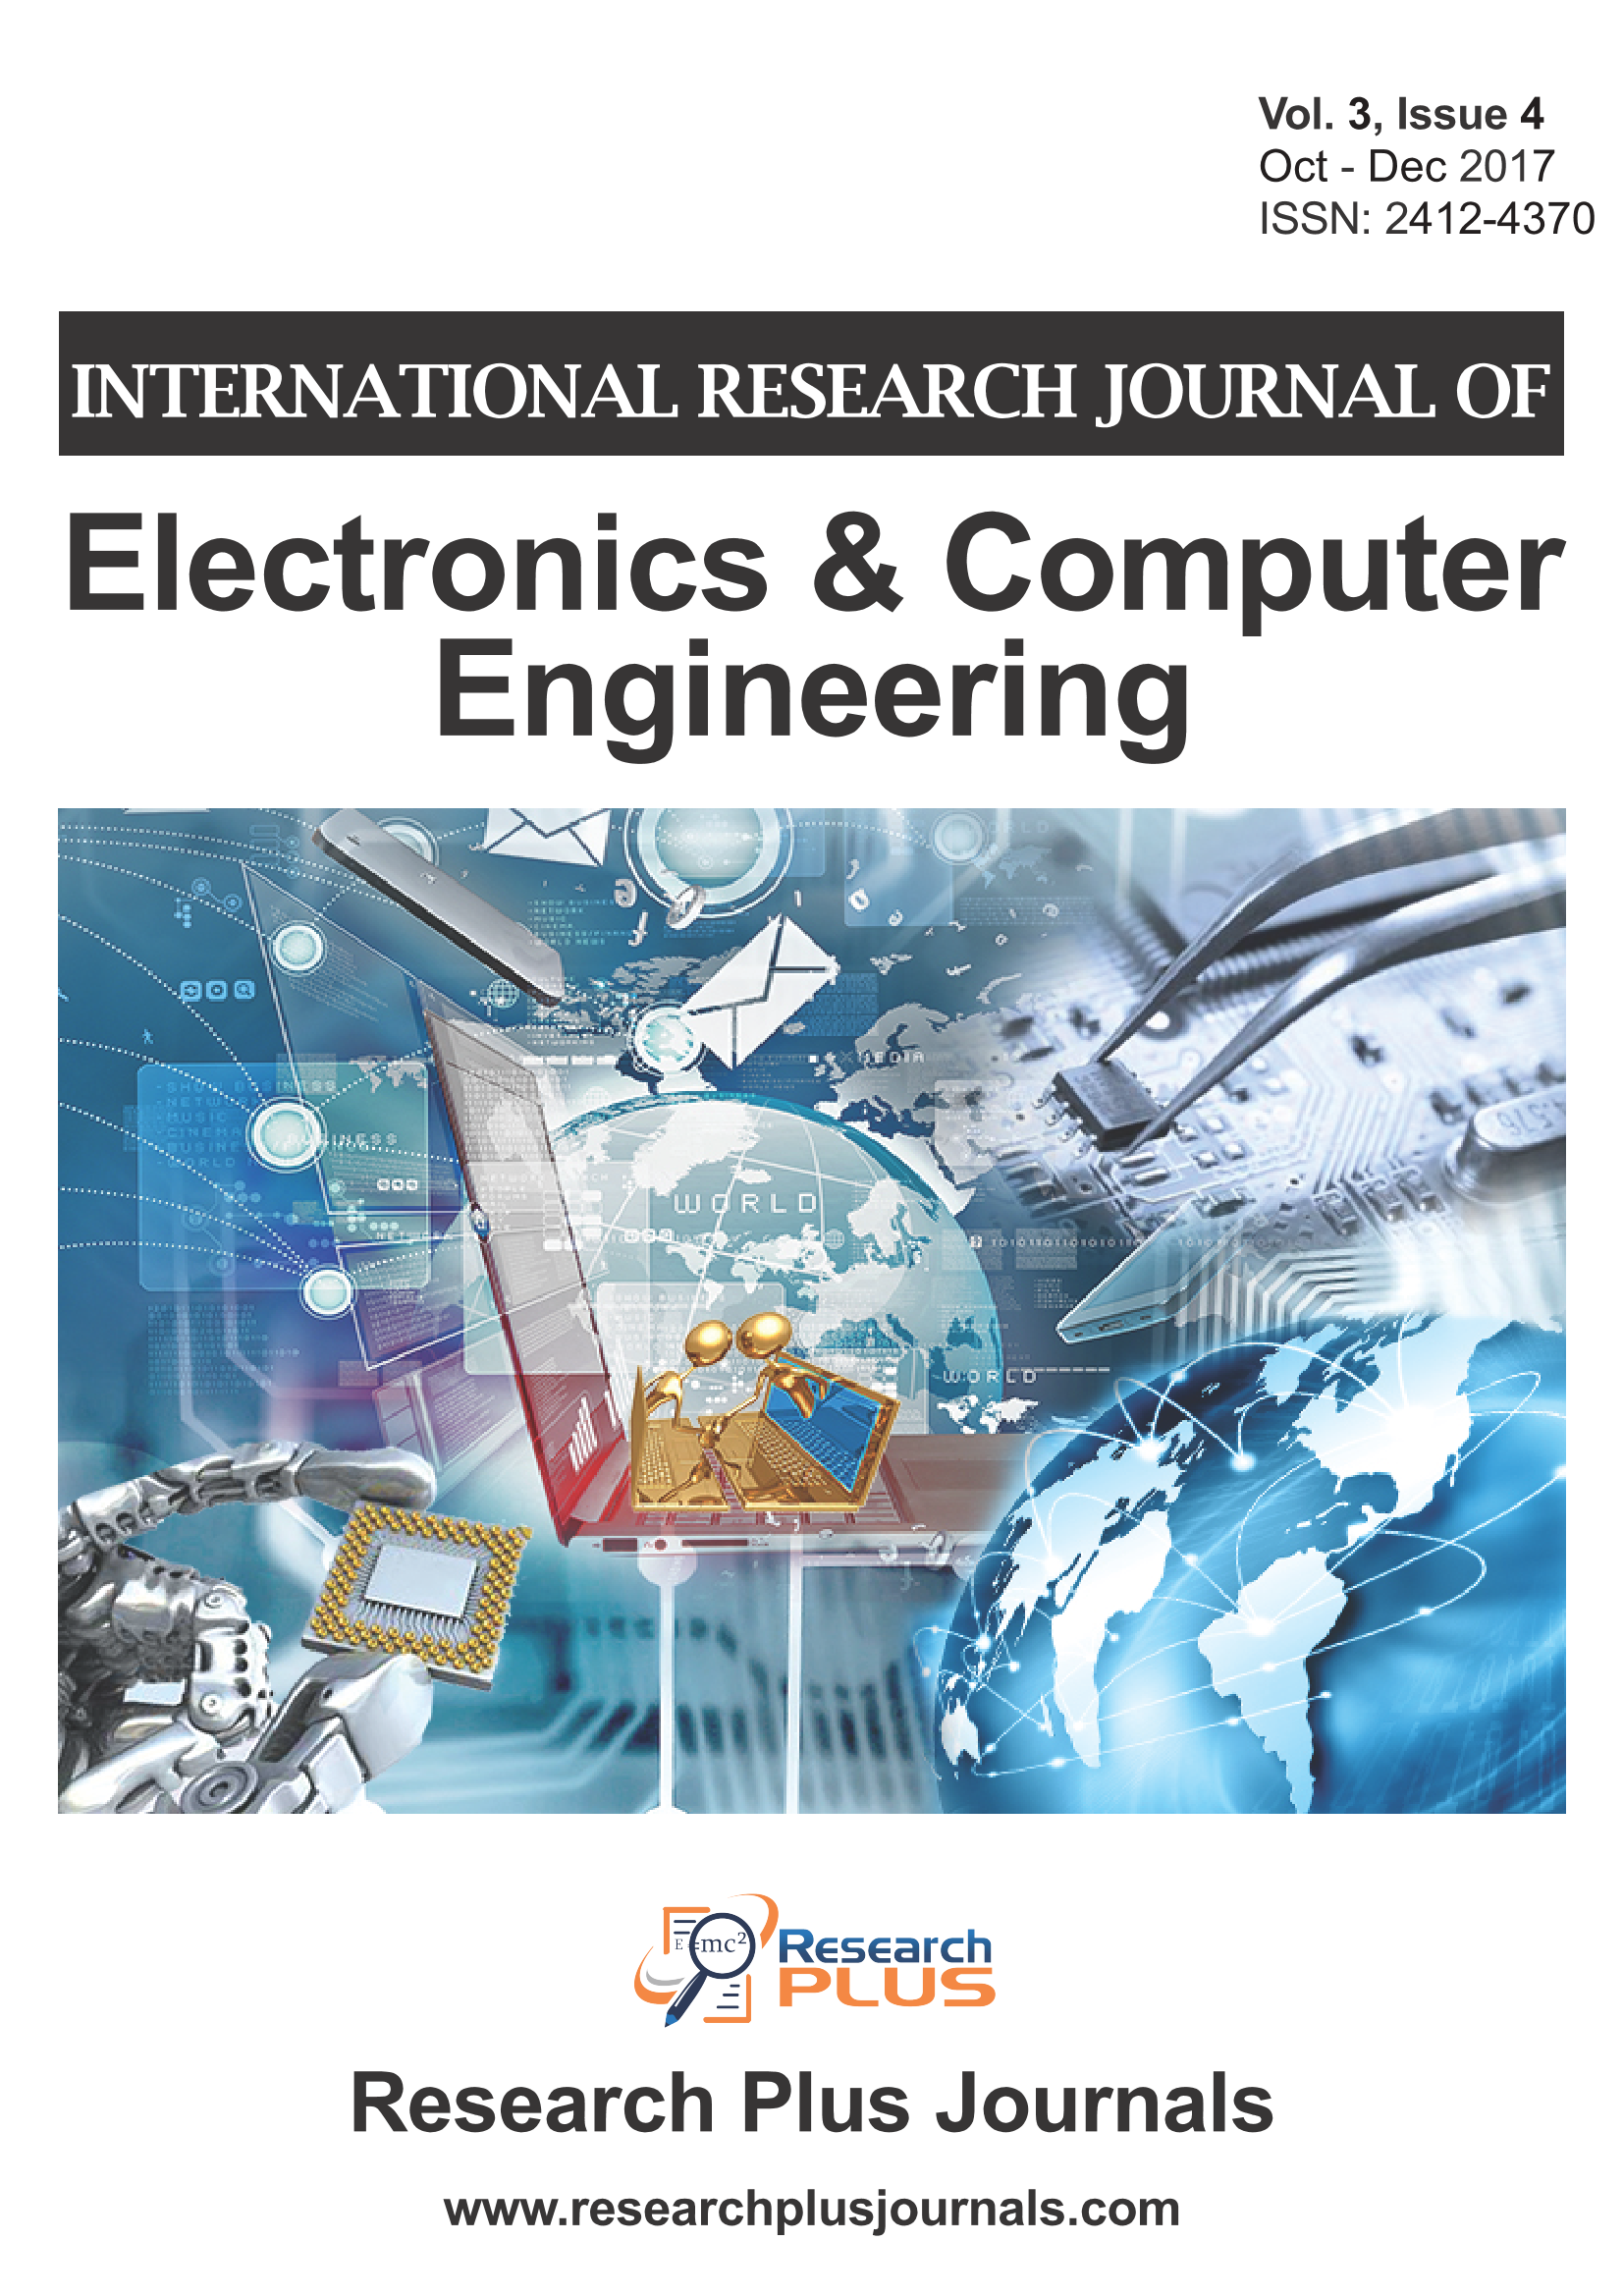 Volume 3, Issue 4, International Research Journal of Electronics & Computer Engineering (IRJECE) (Online ISSN : 2412-4370)